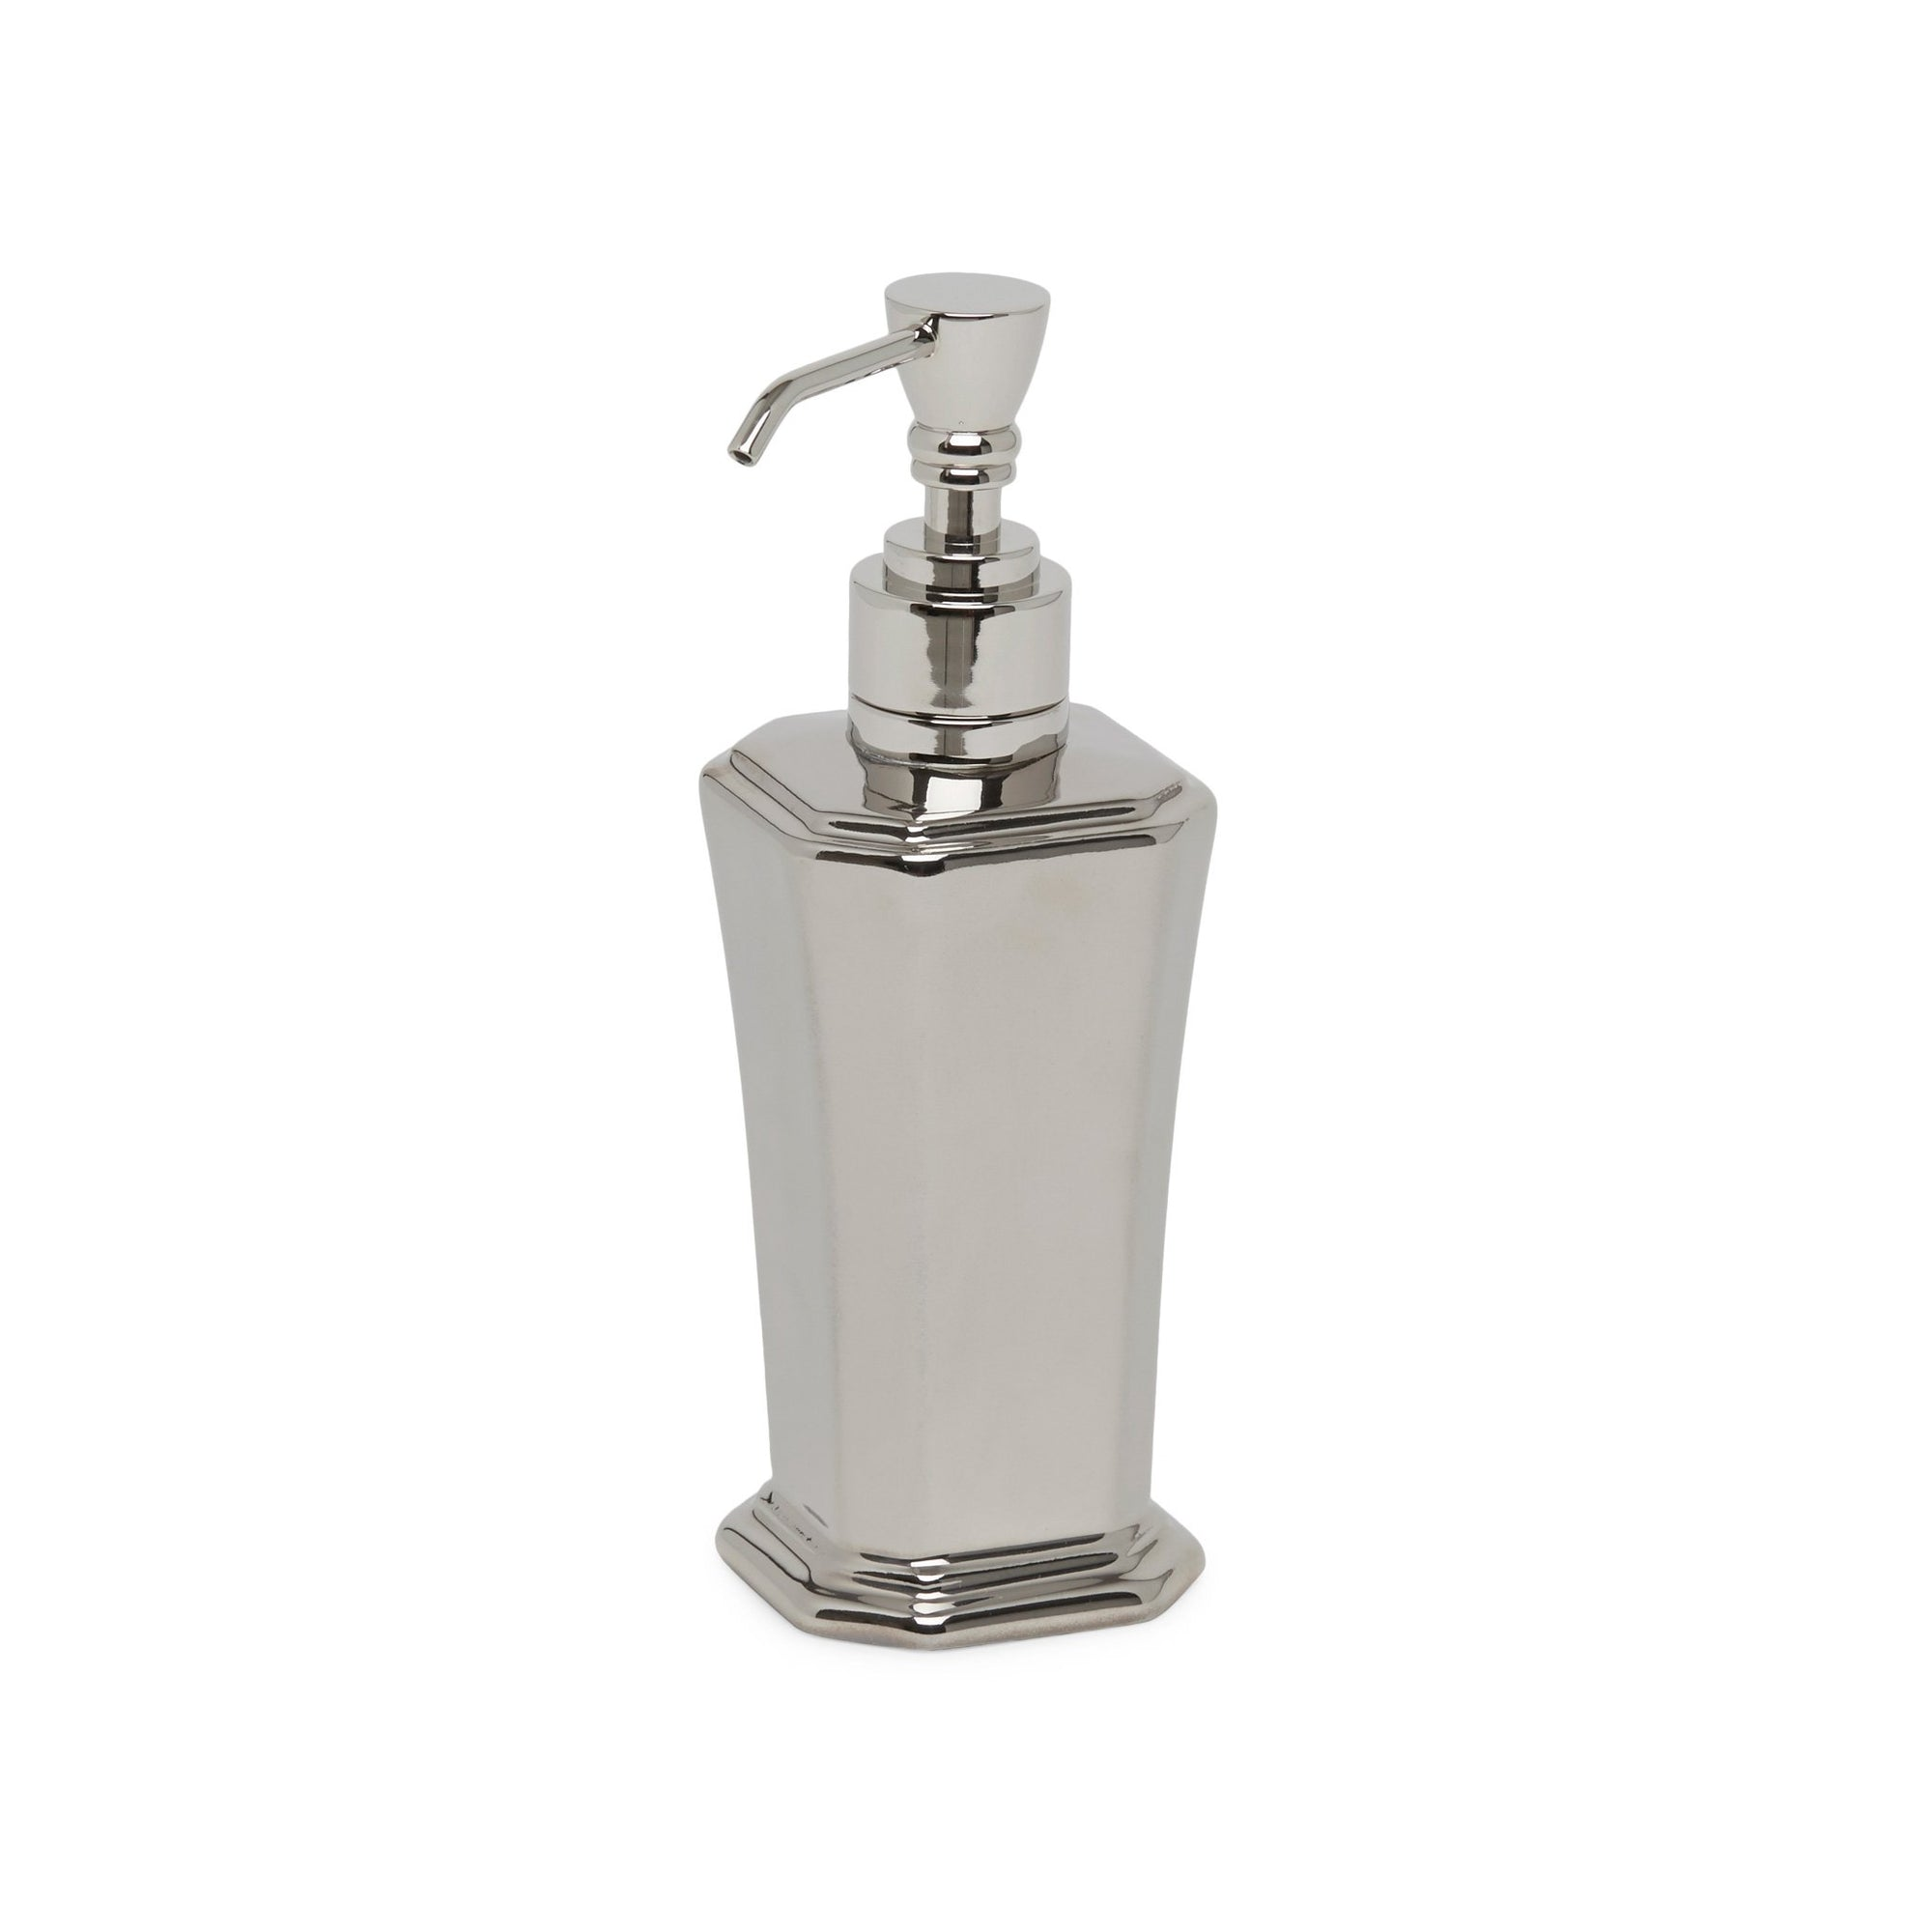 3371-17HP-HP Sherle Wagner International Harrison Ceramic Soap Pump Dispenser in Highly Polished Platinum